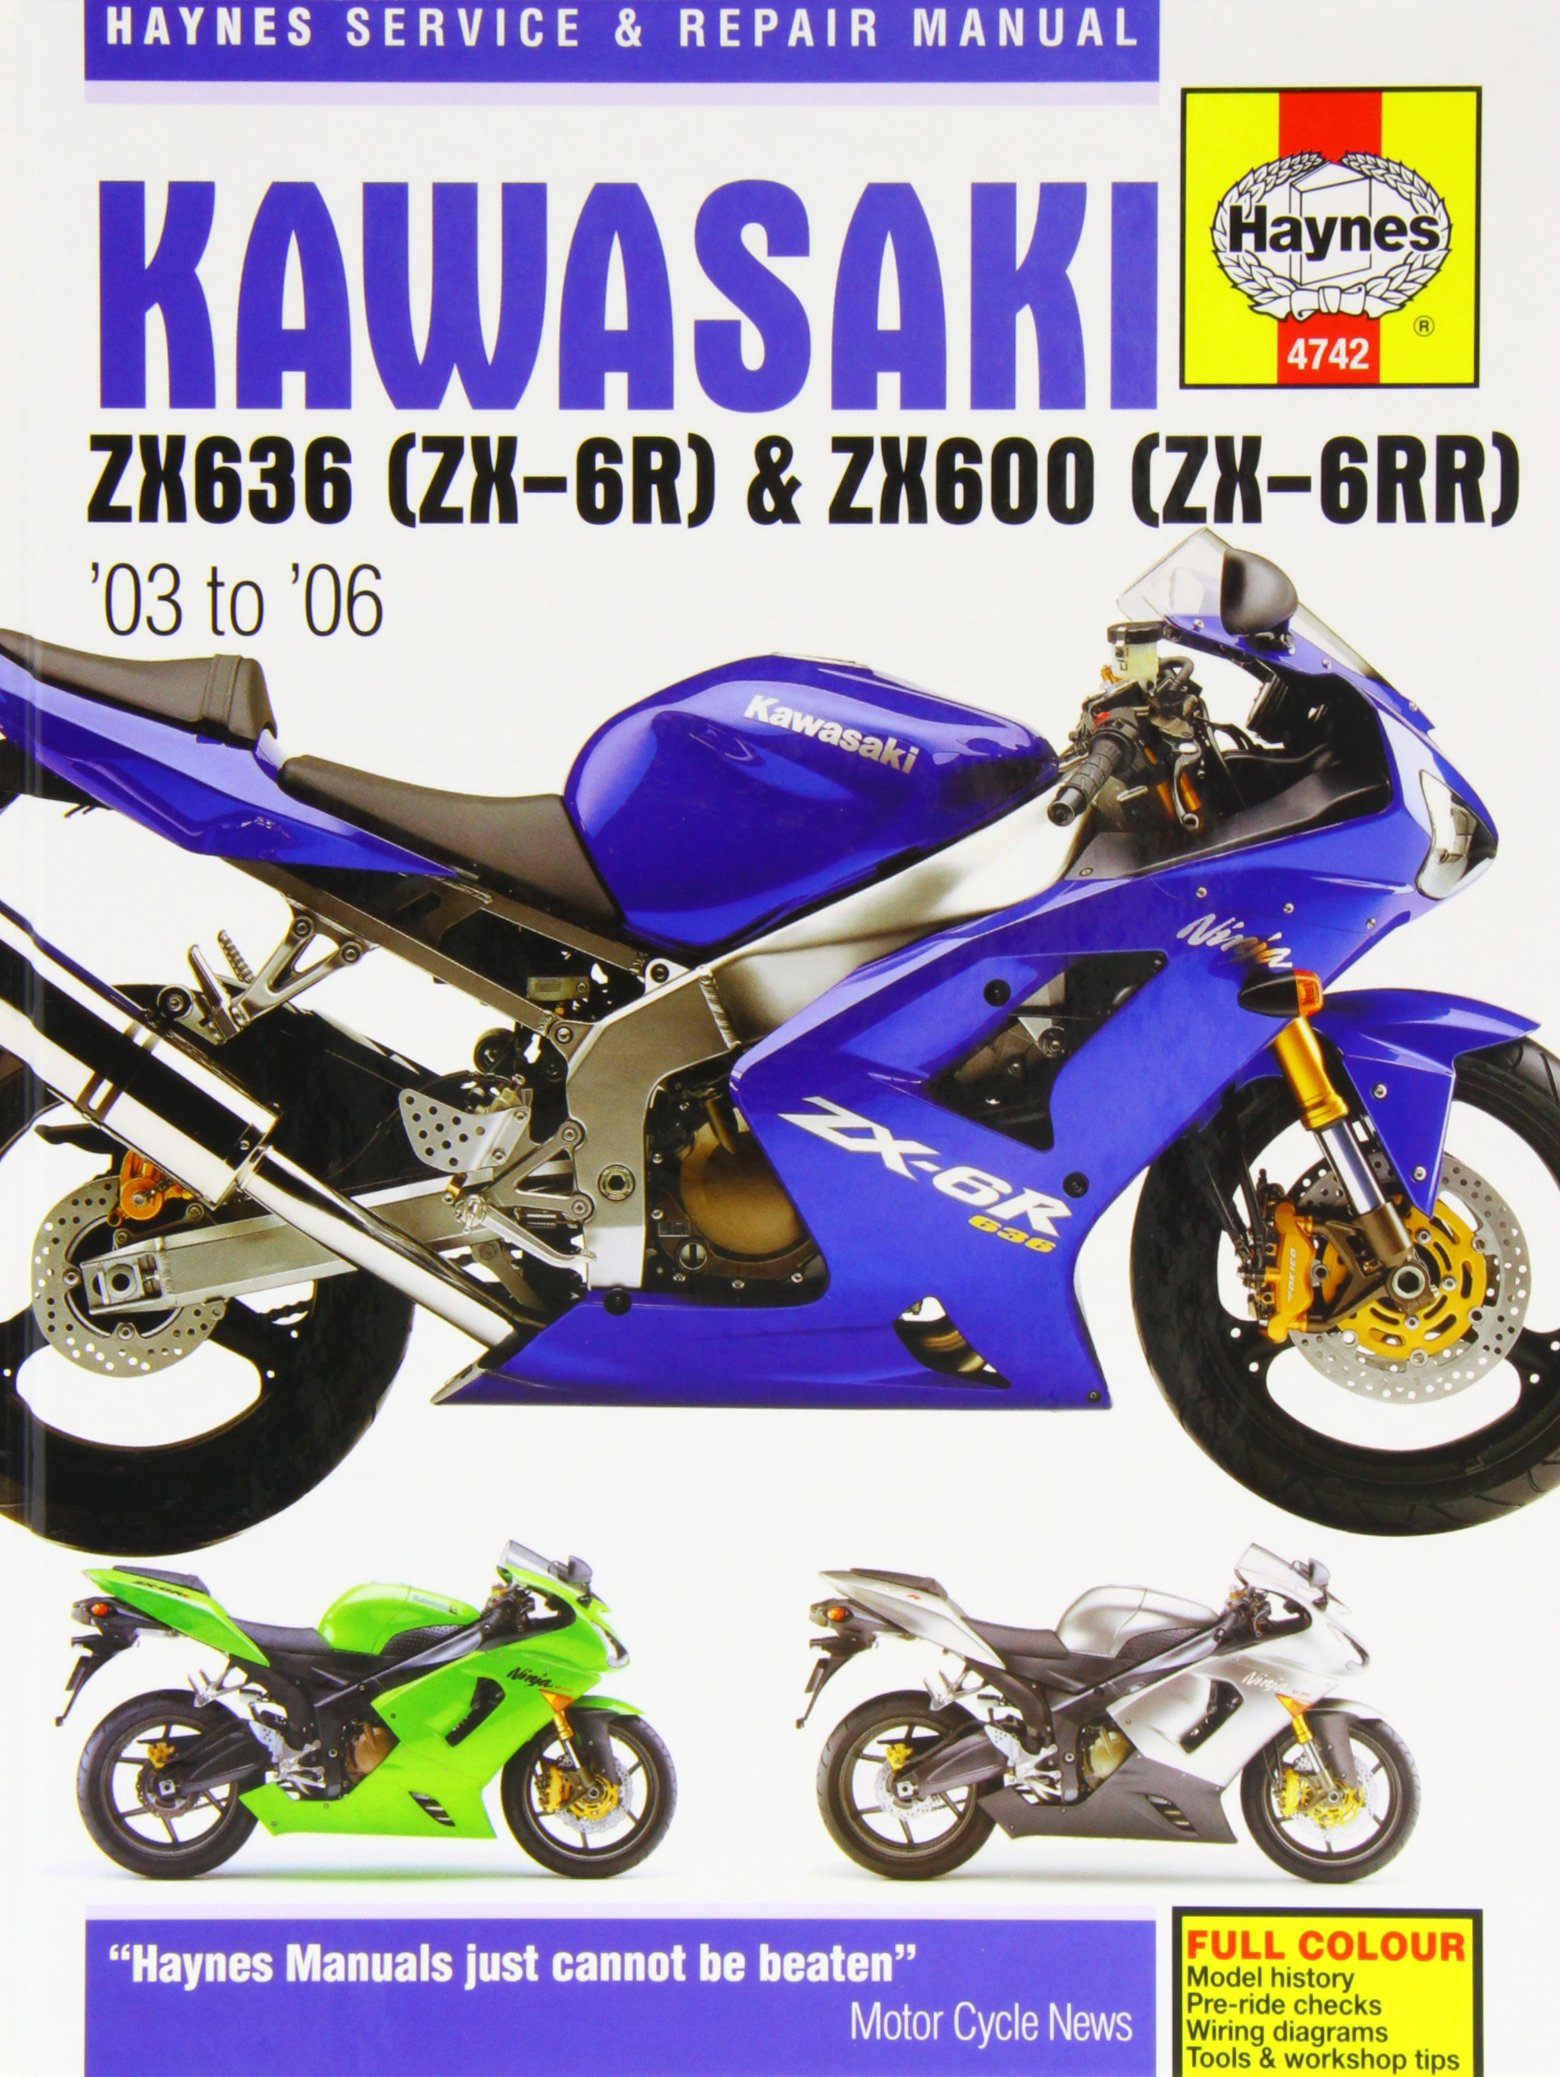 Kawasaki Zx 6r Service And Repair Manual 2003 To 2006 Haynes 2008 Zx6r Wiring Diagram Manuals Matthew Coombs 9781844257423 Books